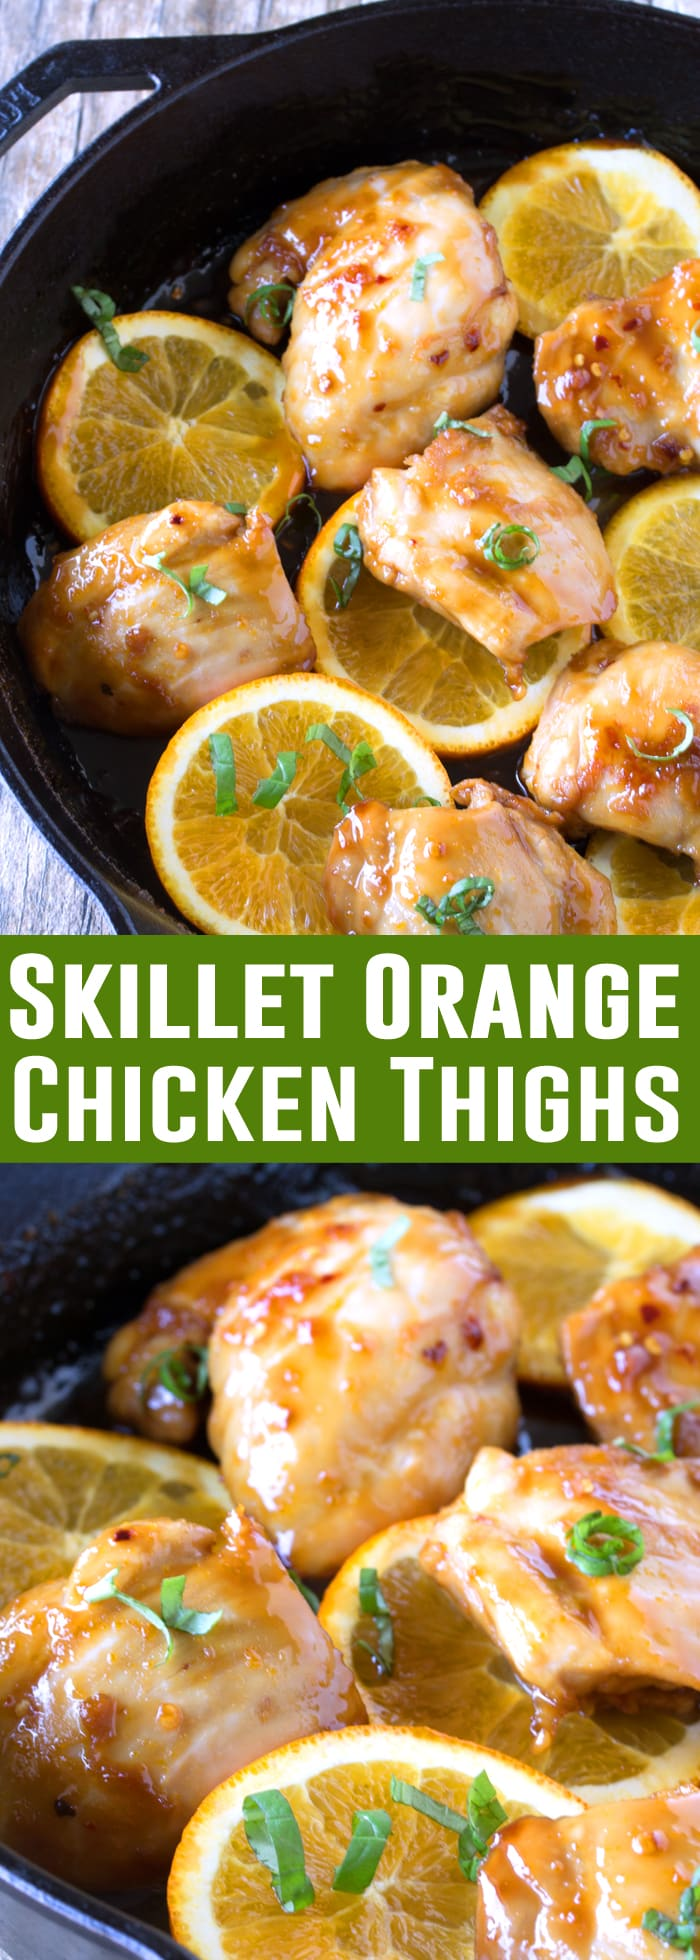 Moist and juicy chicken thighs are cooked in an Asian-inspired orange glaze in these tasty Orange Glazed Skillet Chicken Thighs.